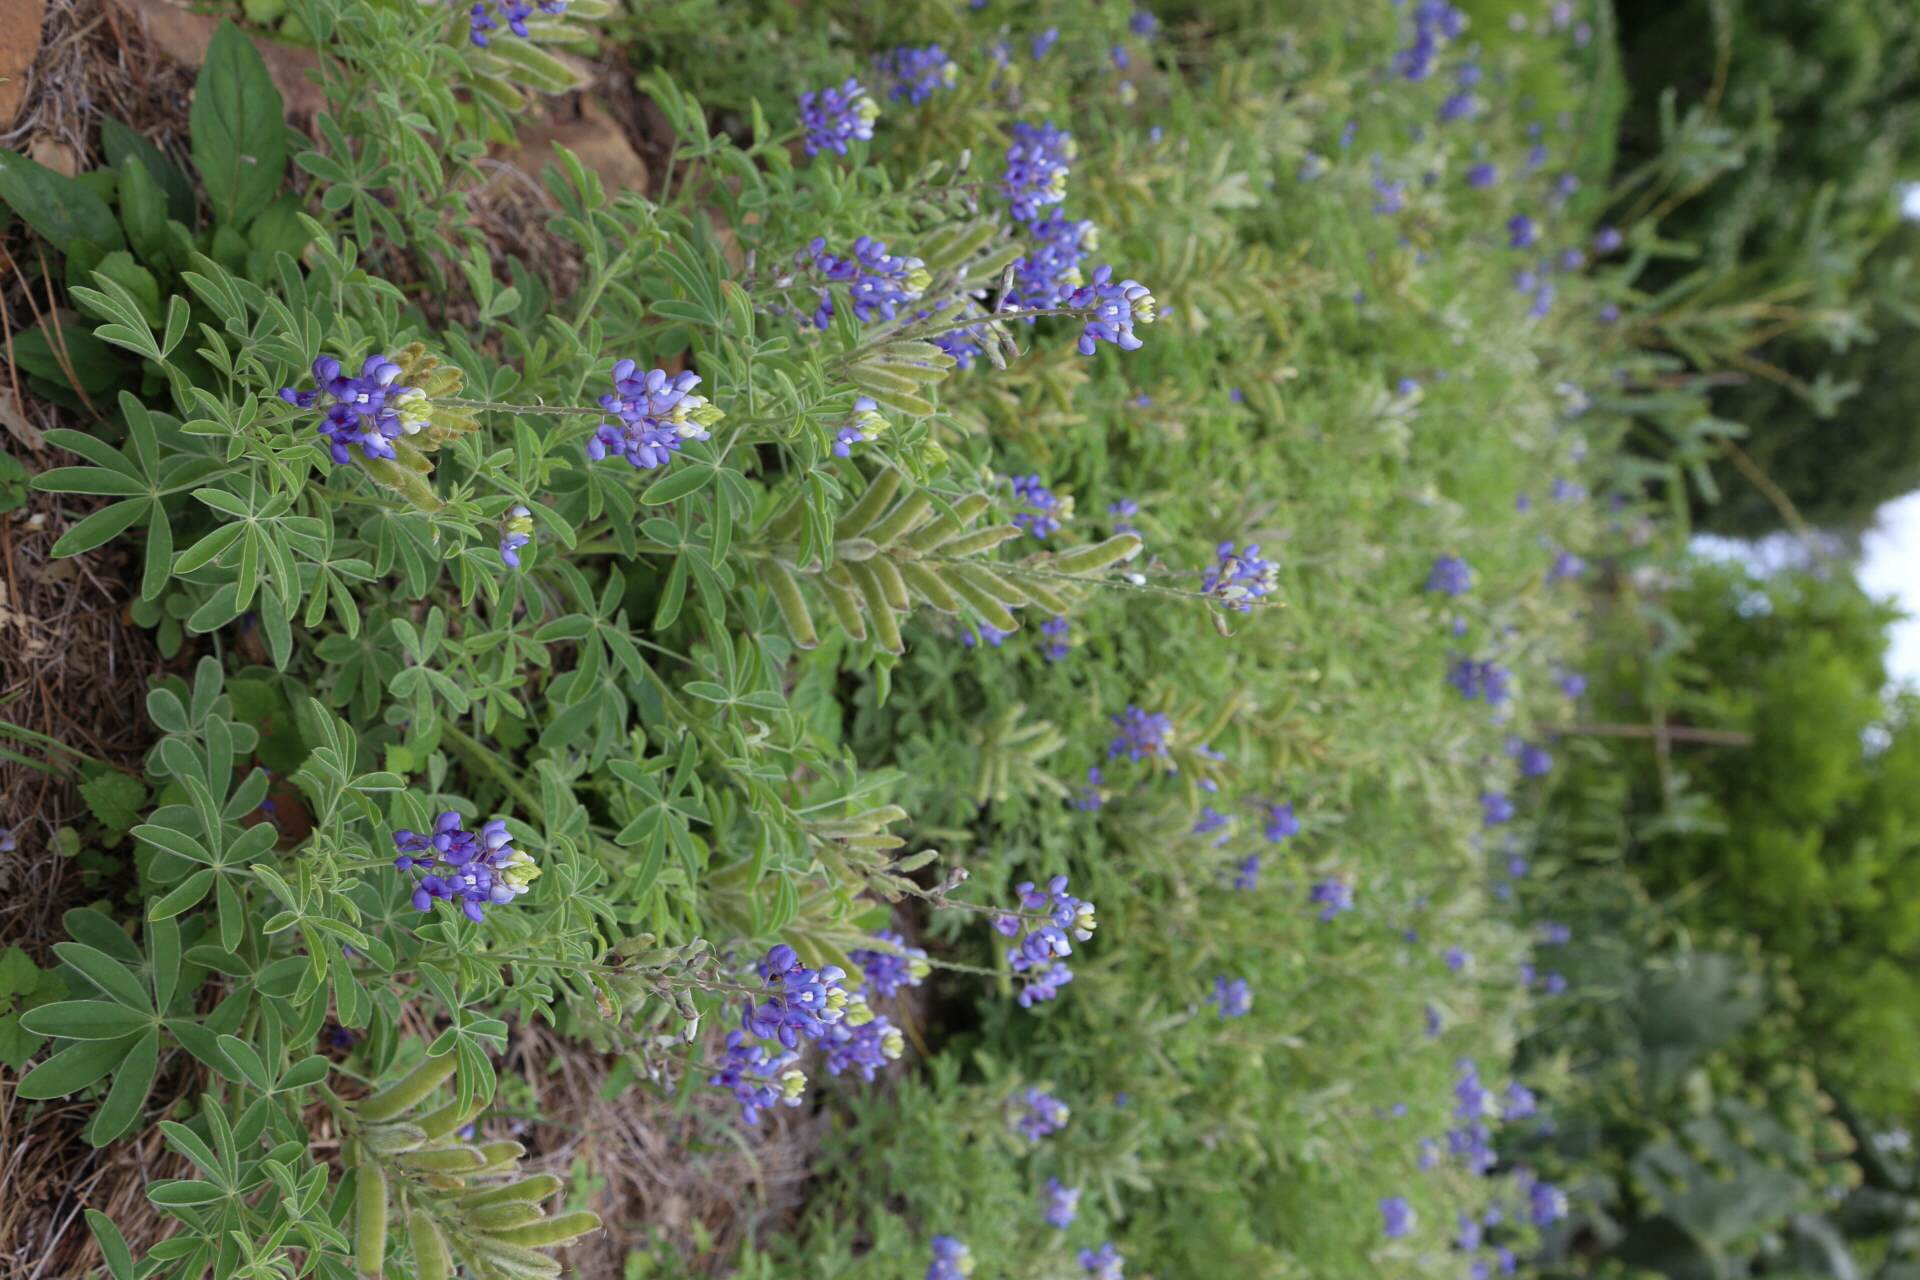 No Texas garden is complete without bluebonnets